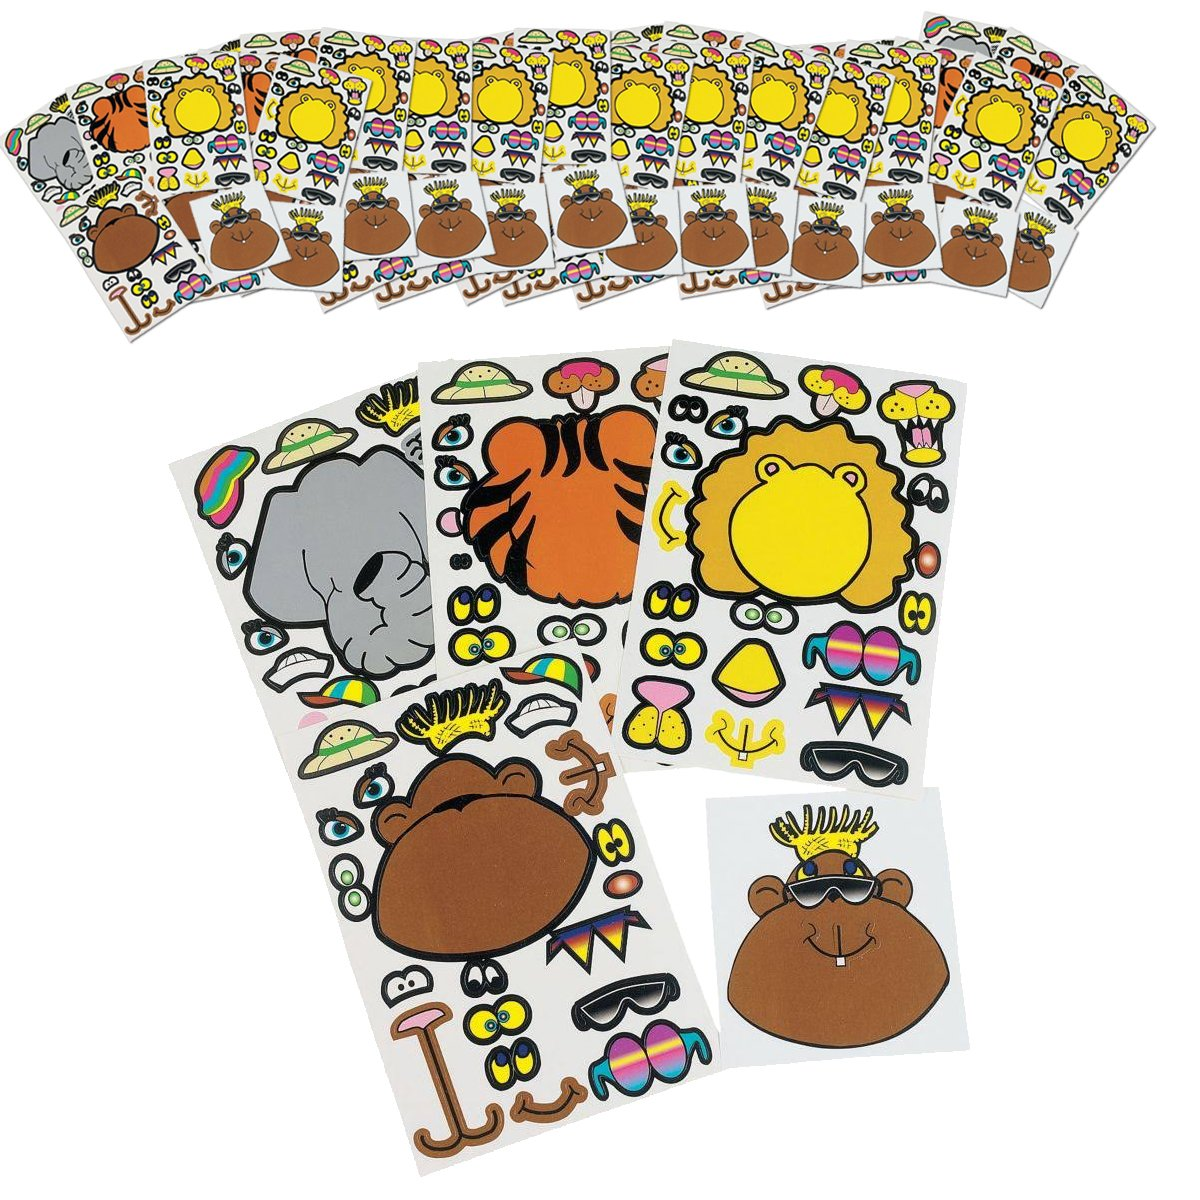 Safari Zoo Animal Party Favors 120 Piece Set Includes Treat Boxes and Enough Party Favors Birthday Bundle for 12 Kids Jungle Animal Party Supplies Pack by RBBZ party (Image #5)